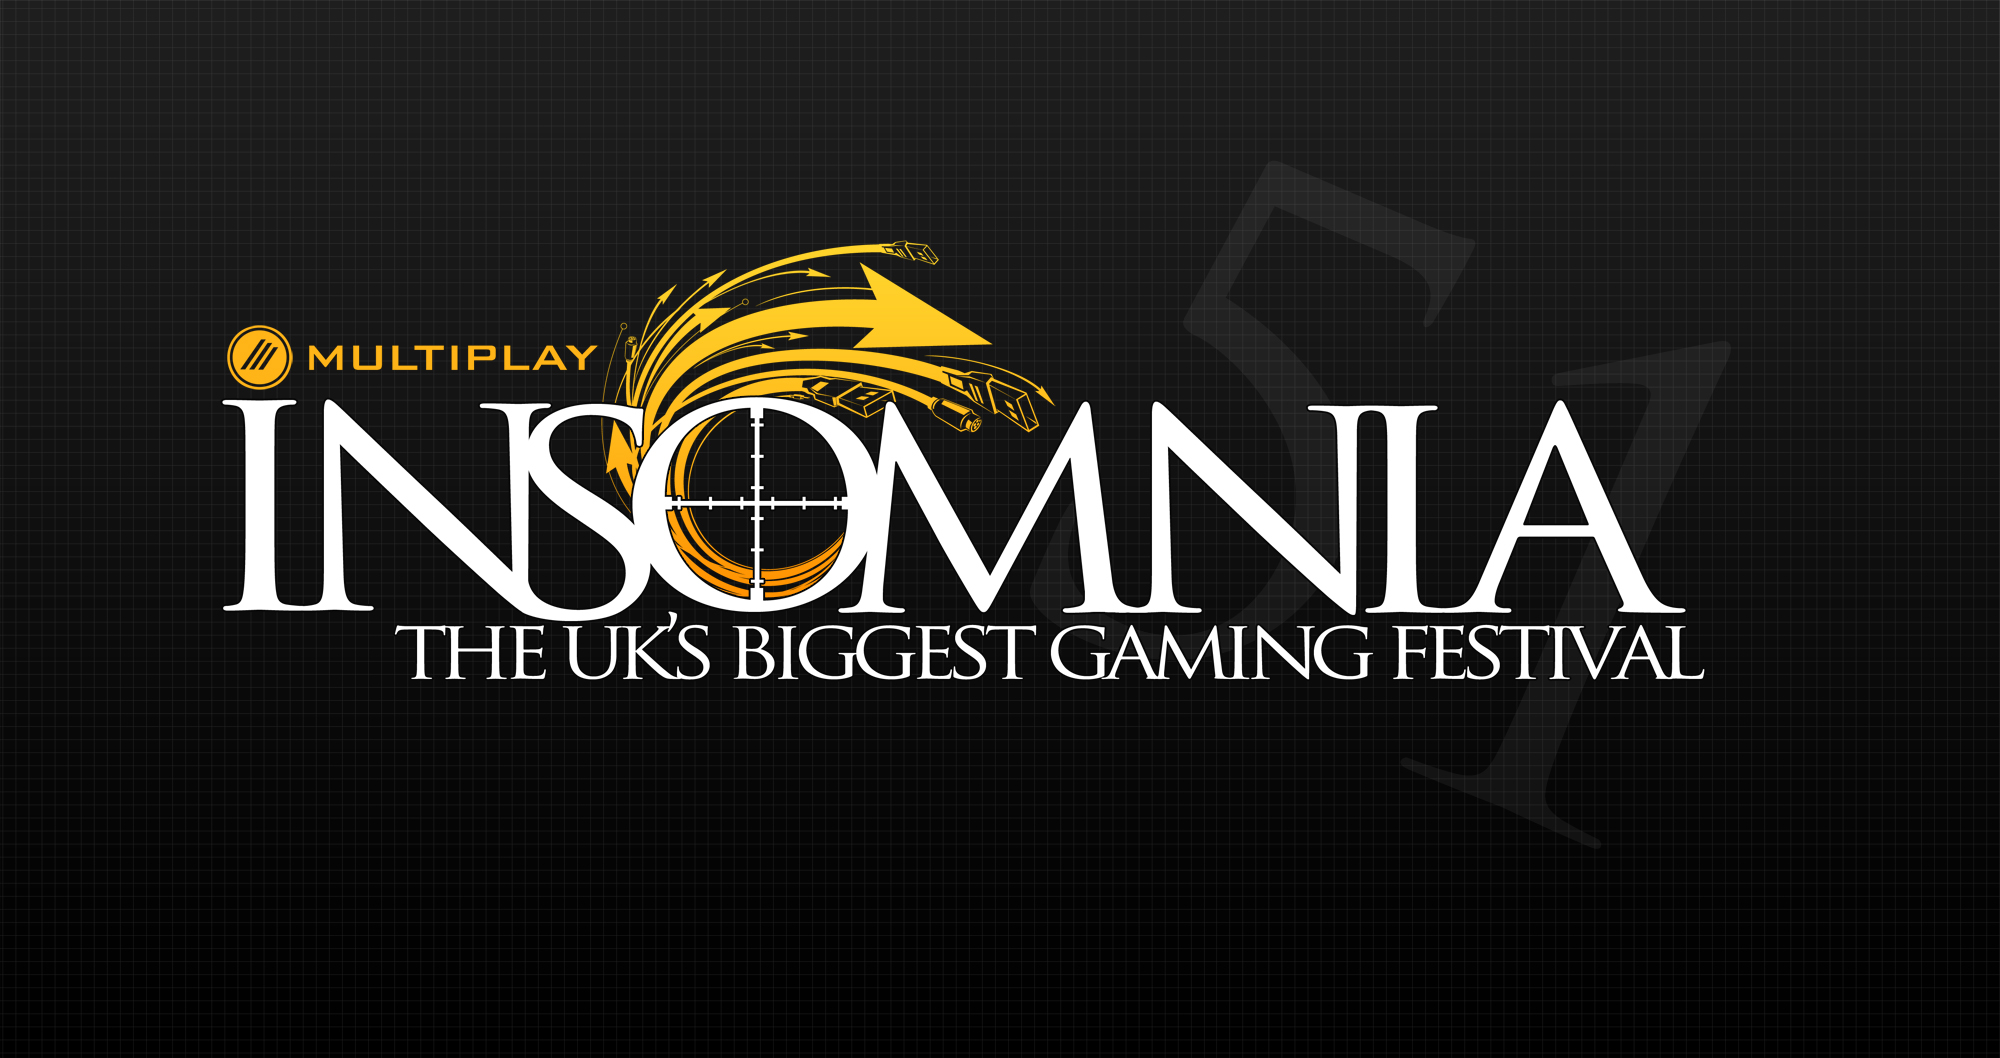 Insomnia51 The Biggest Yet, Showcasing The Best New Games